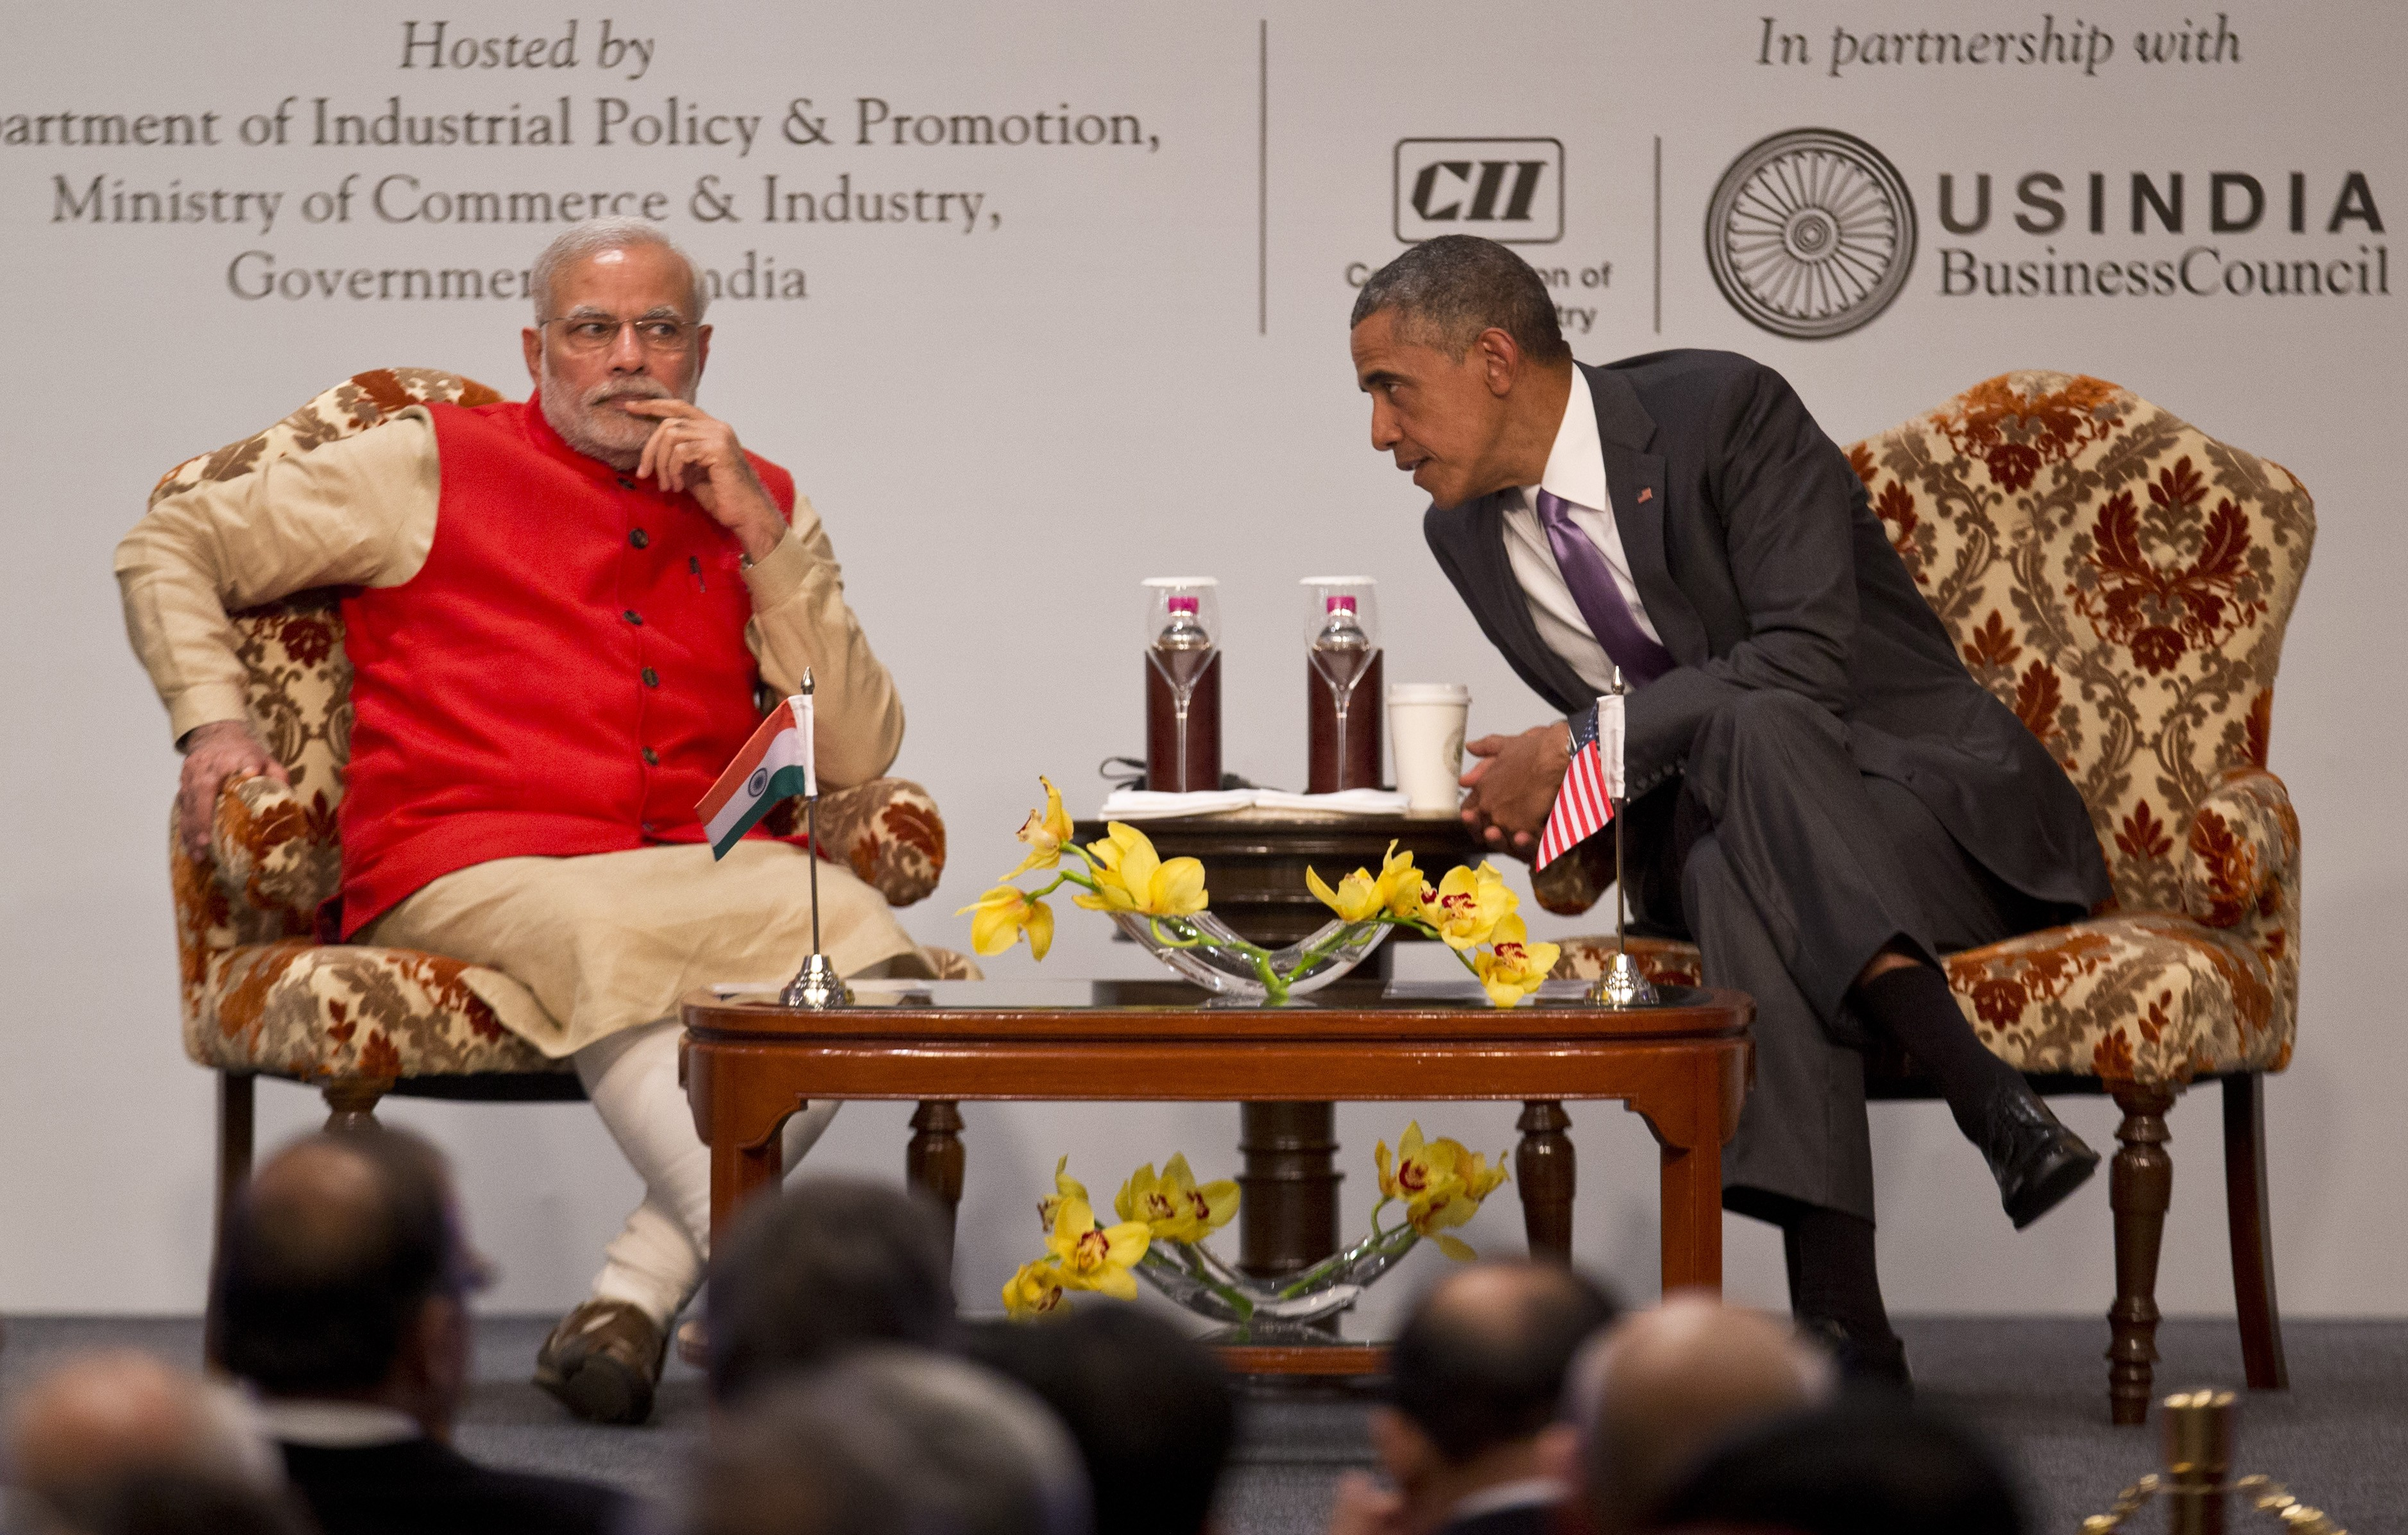 U.S. President Barack Obama and Indian Prime Minister Narendra Modi in New Delhi.